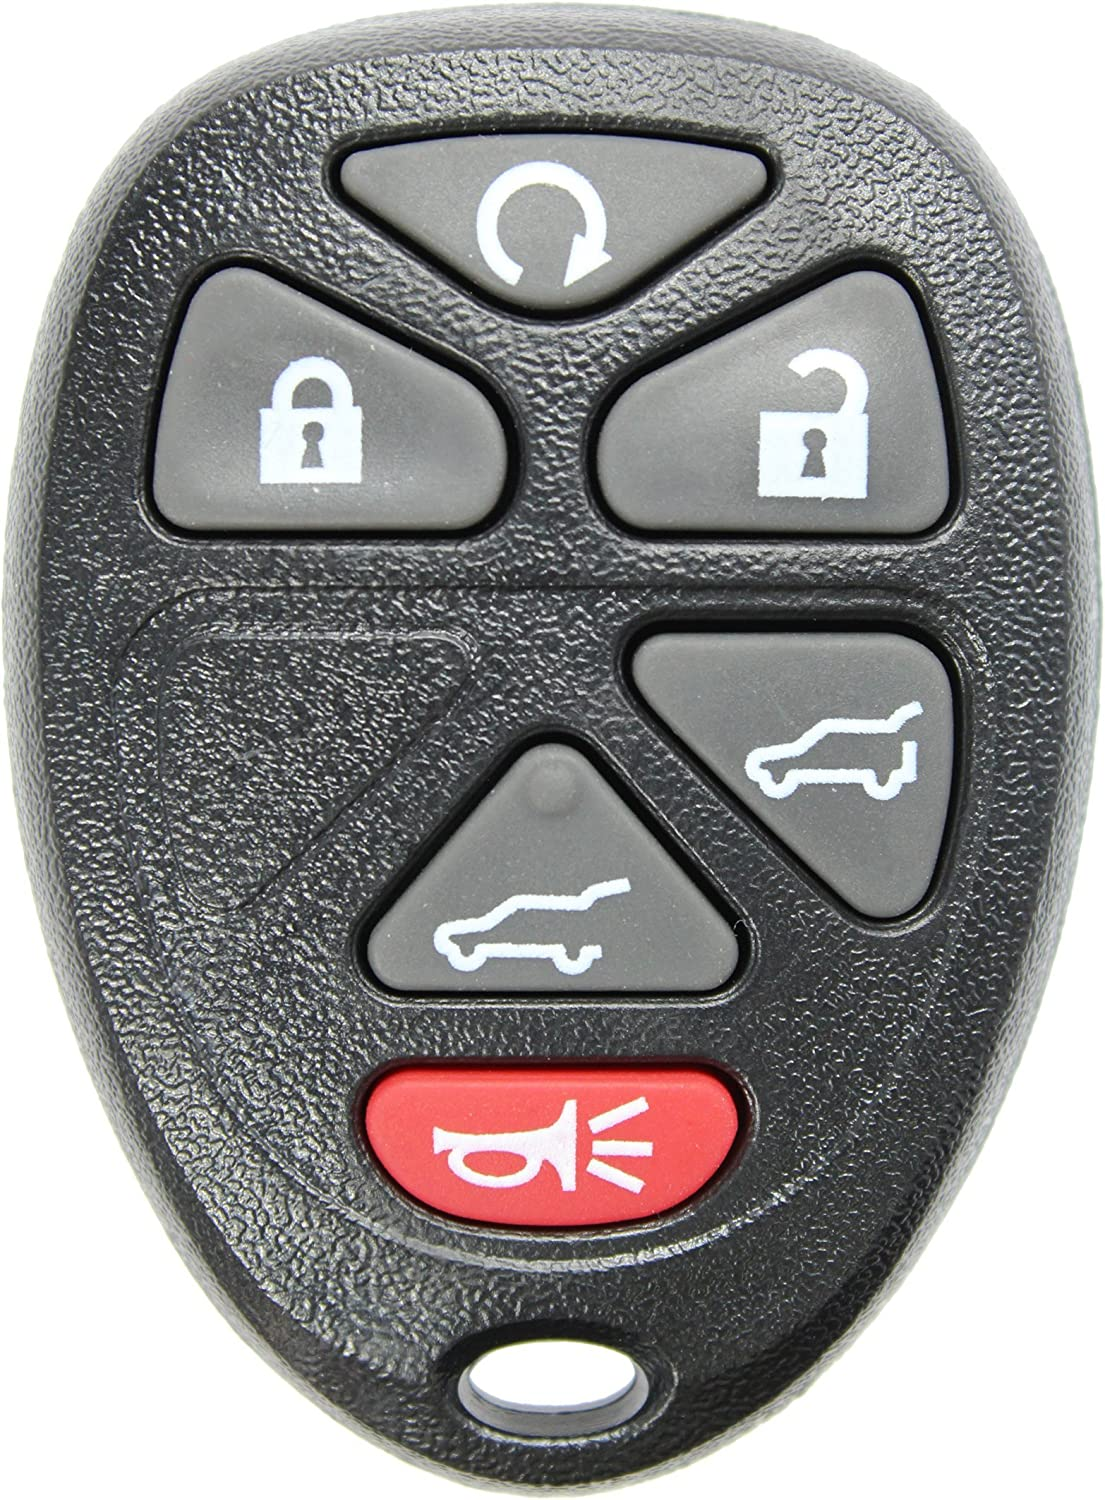 Gm Key Fob >> Factory Gm Key Fob Tahoe Yukon Escalade 15913427